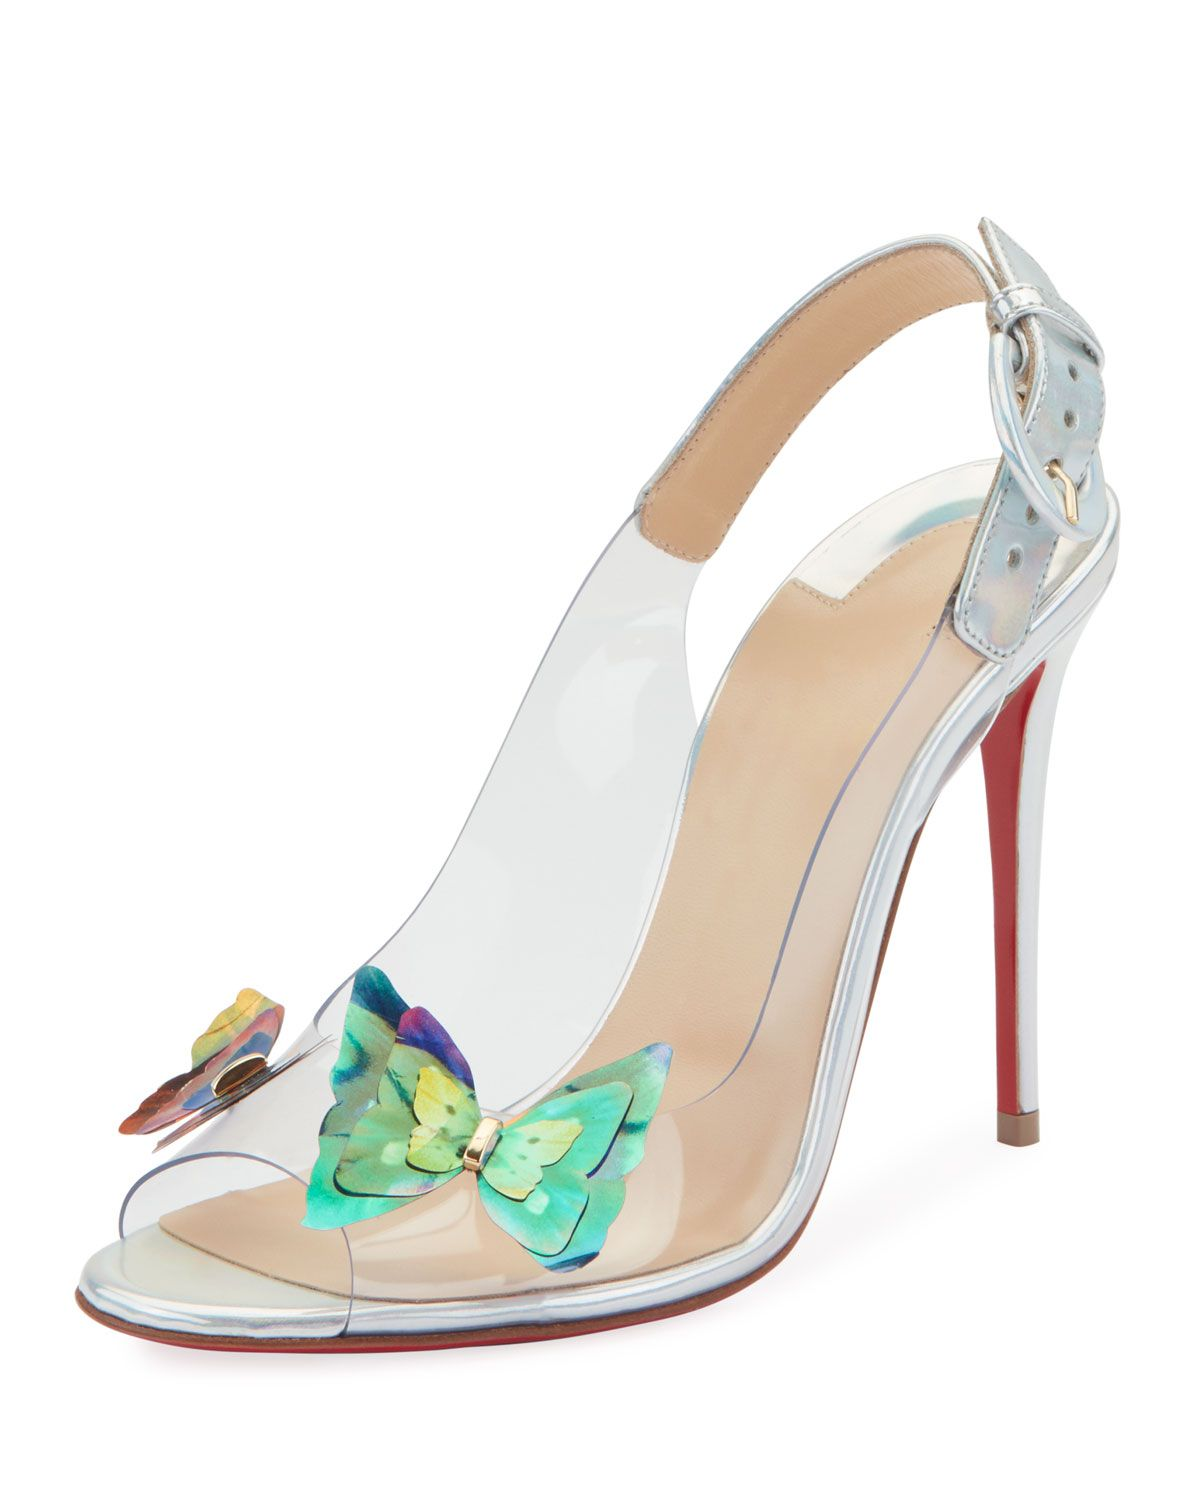 b4458615ea0f Ilcepoze 100 See-Through Red Sole Pumps with Butterfly